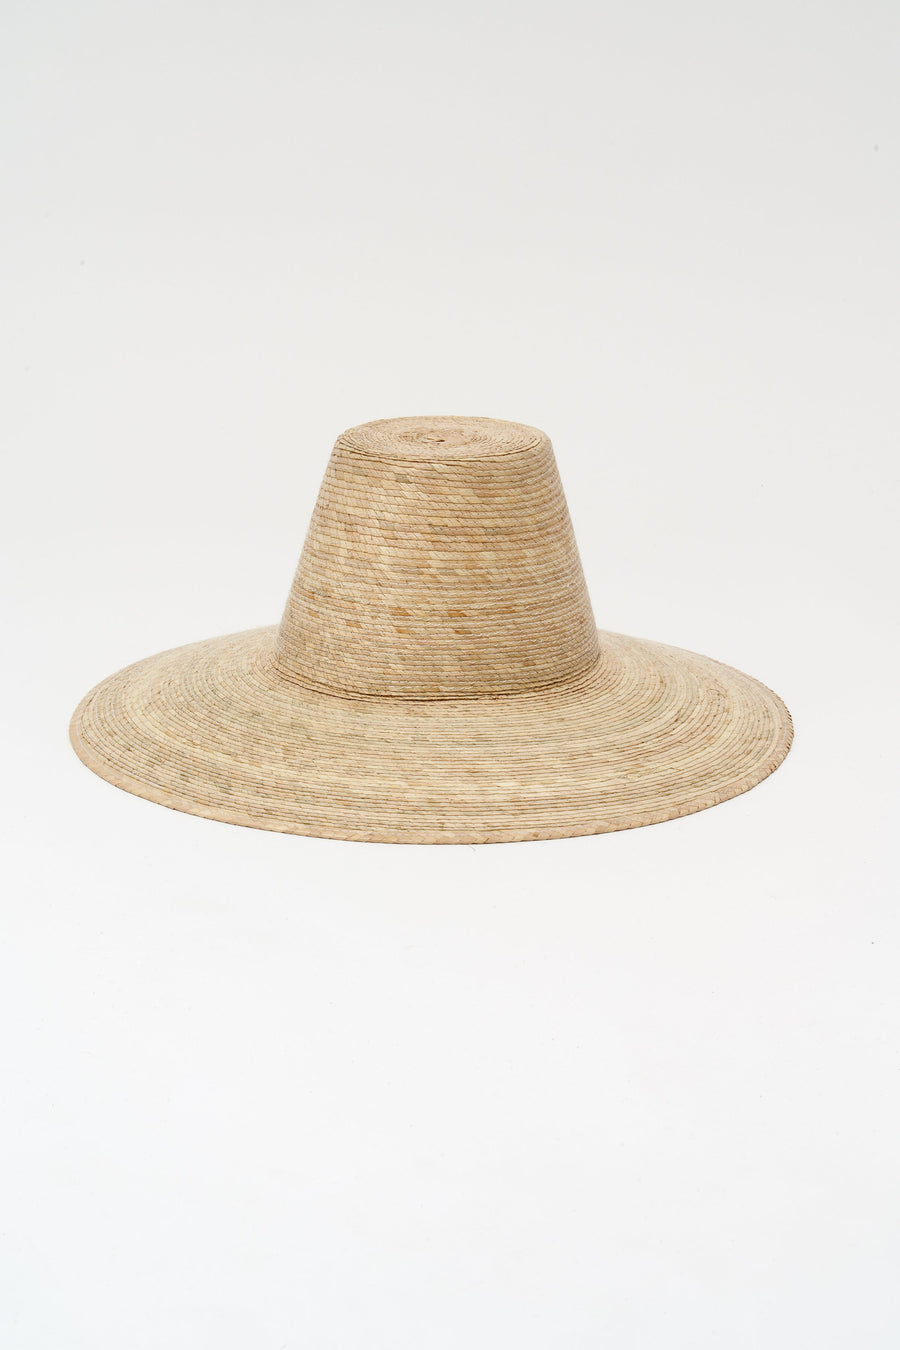 Communitie Marfa Pinto Canyon Road Hat